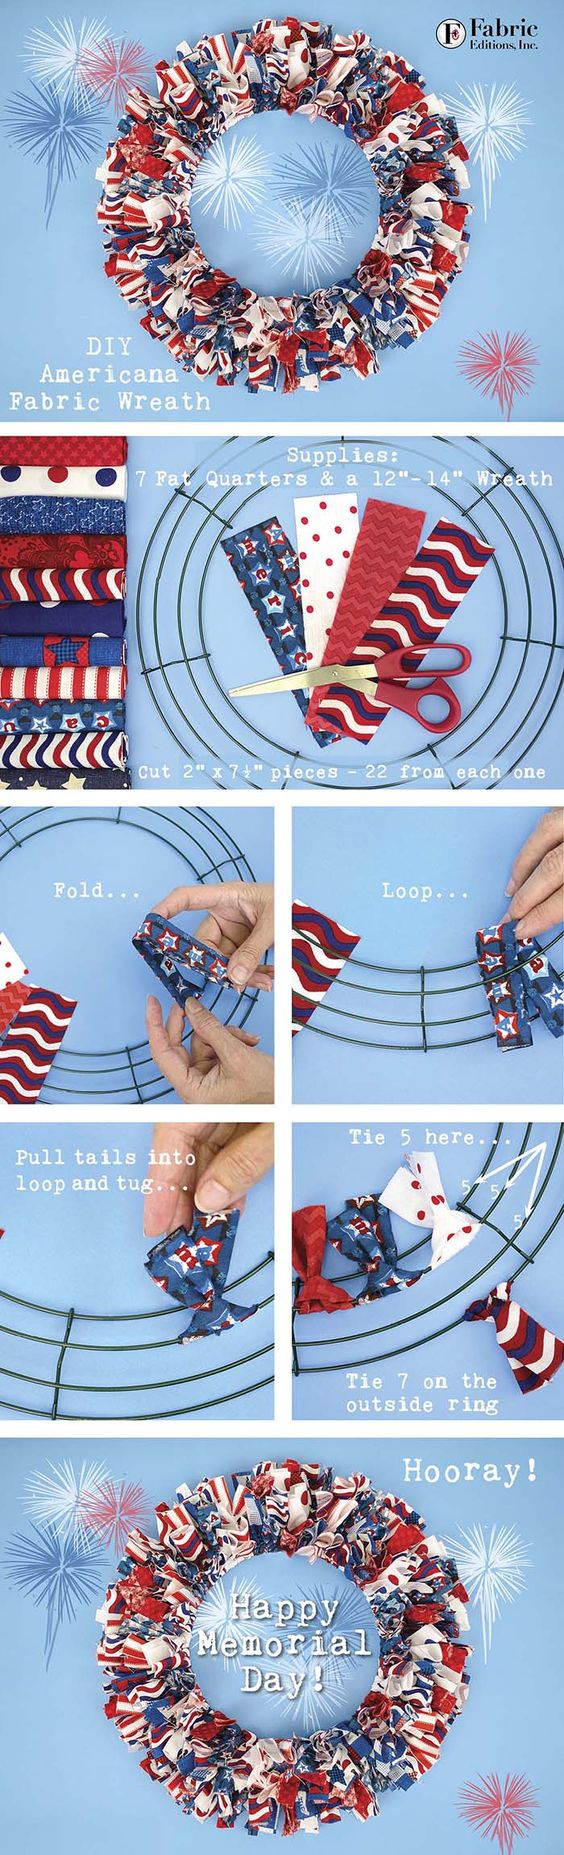 Summer 2016 is quickly arriving, so time to start those red, white and blue projects! Fabric Editions designed a great selection of Americana singles this year. Fresh prints, polka dots, and really good reds! Today I'm featuring these found in Meijer's stores. Take a look at this little DIY pictorial to see how easy it is. You…